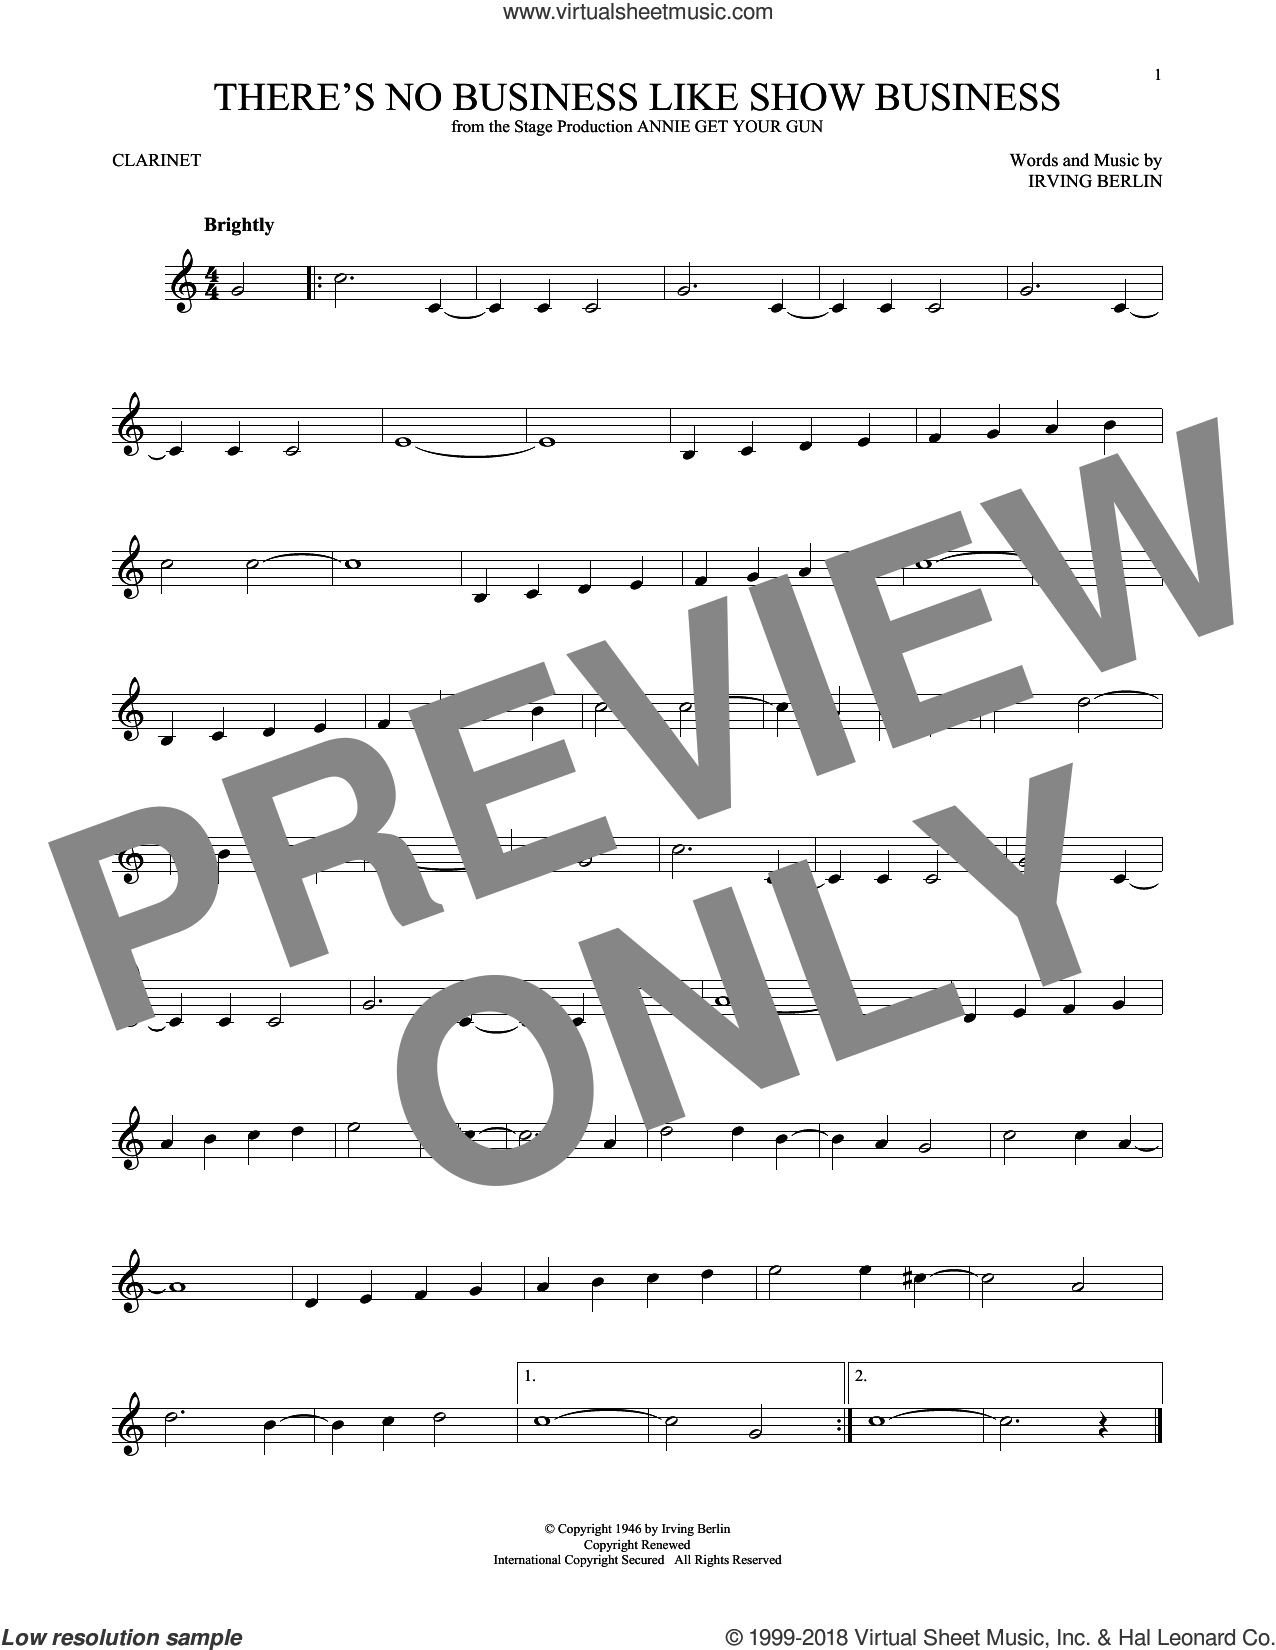 There's No Business Like Show Business sheet music for clarinet solo by Irving Berlin, intermediate skill level